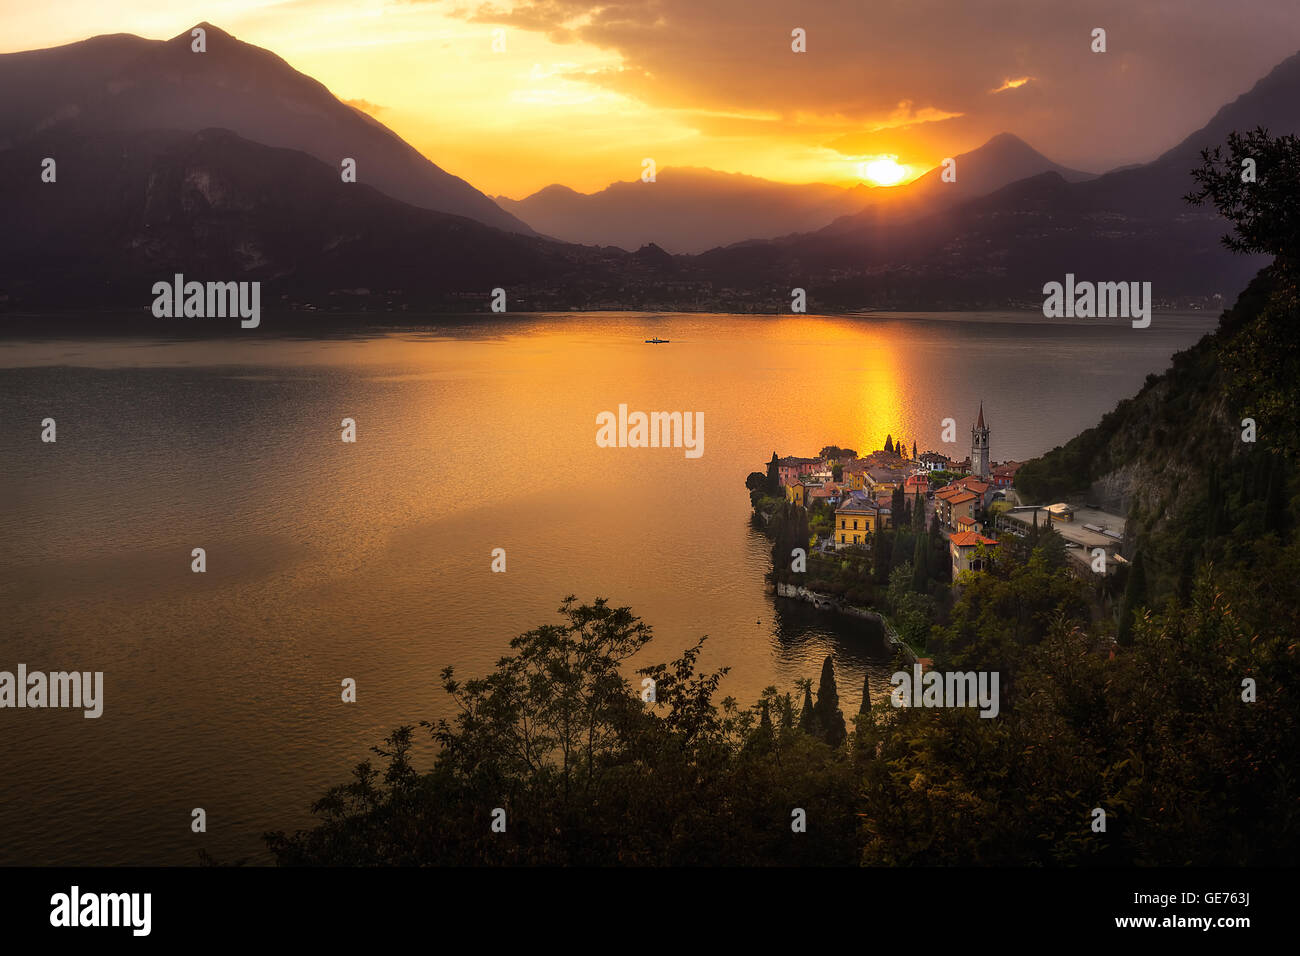 Varenna Panorama View at Sunset - Lake Como, Lombardy, Norther Italy - Stock Image